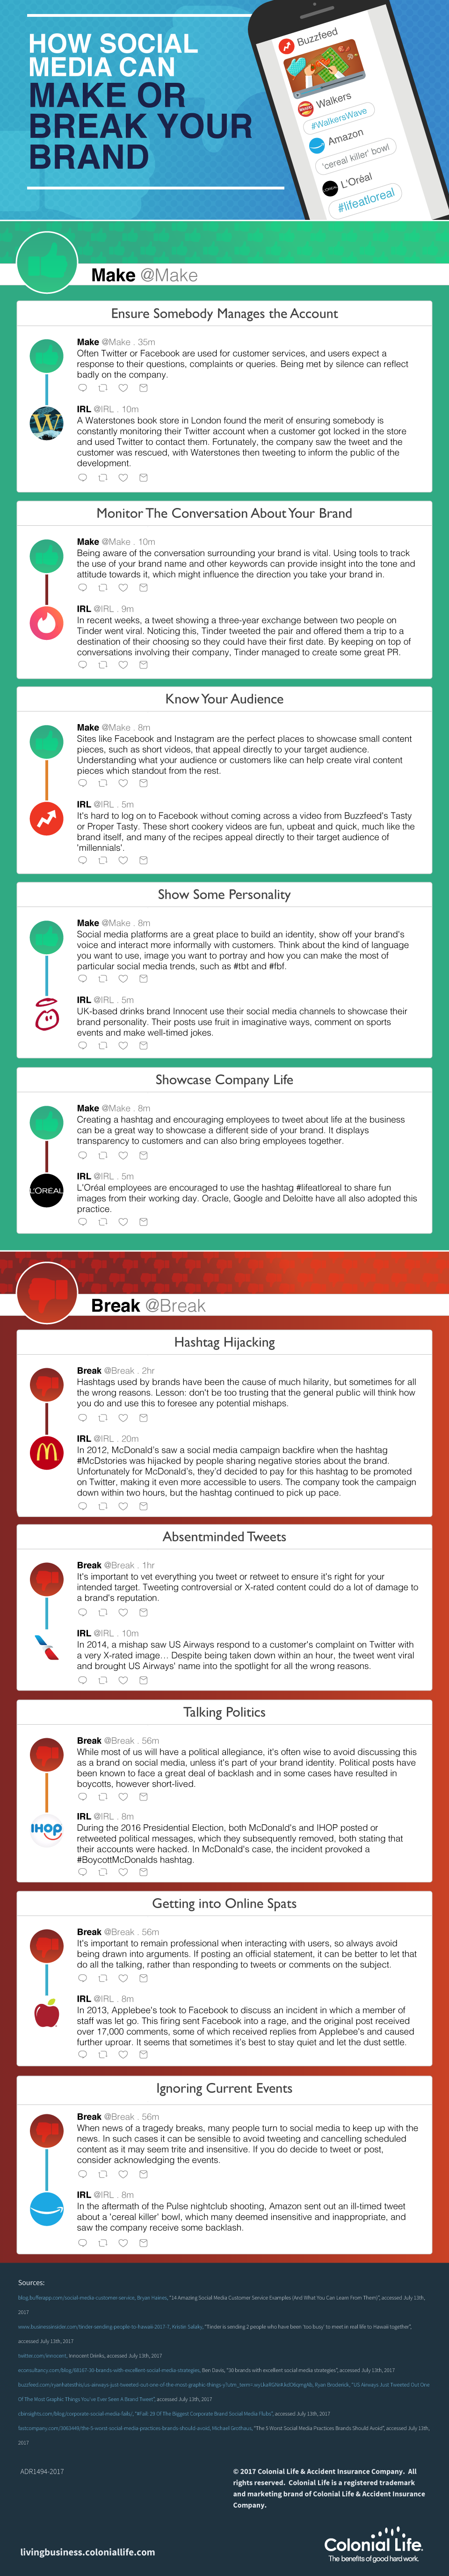 How Social Media Can Make or Break Your Brand [Infographic] | Social Media Today